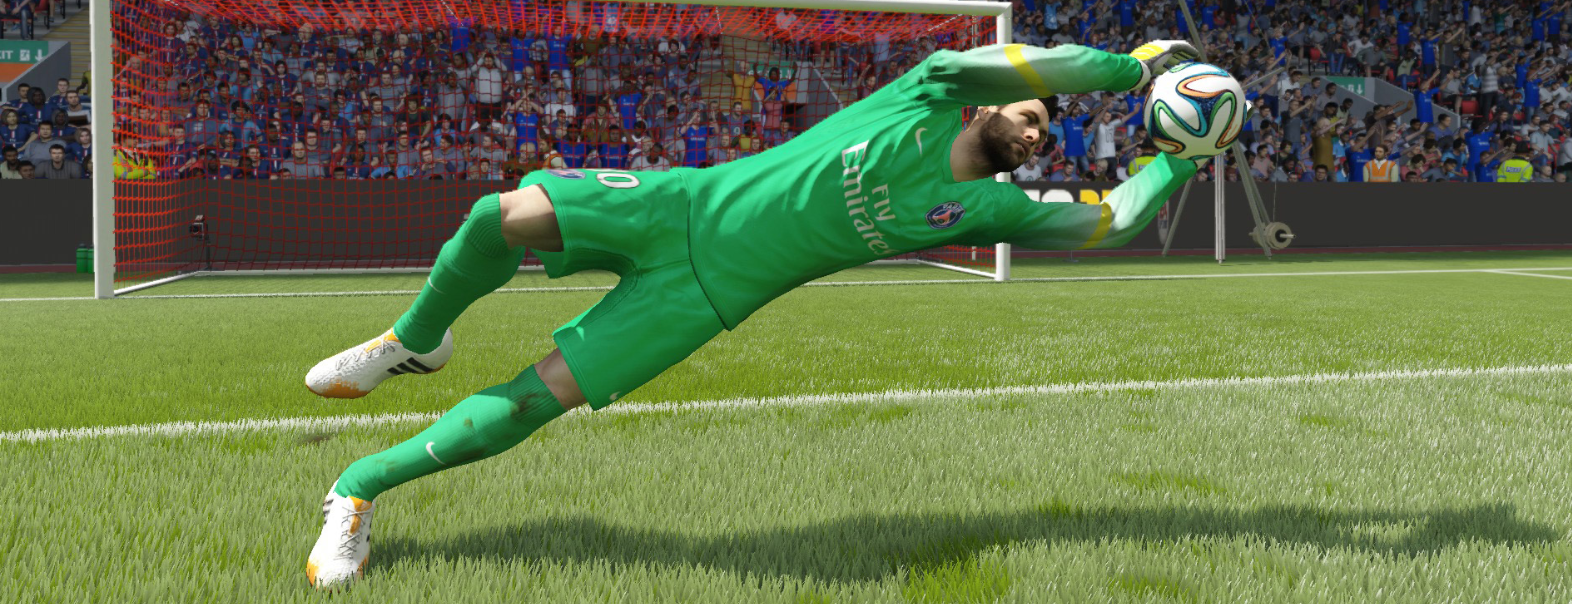 antihype fifa 15 screenshot 4